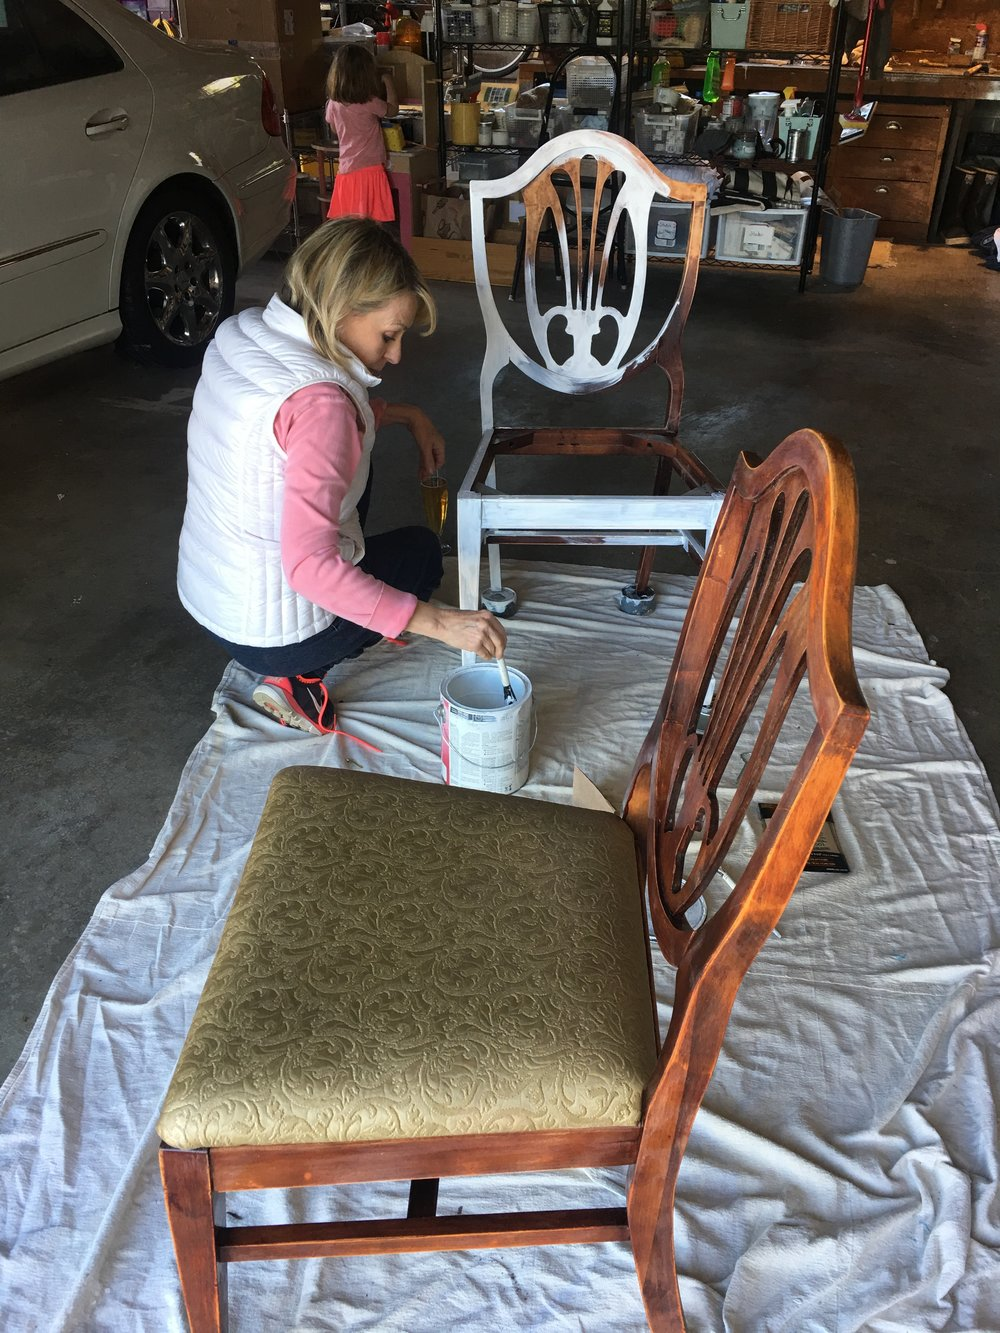 To be fair, that person painting that chair is actually my mom. She is a PRO at refurbishing furniture!